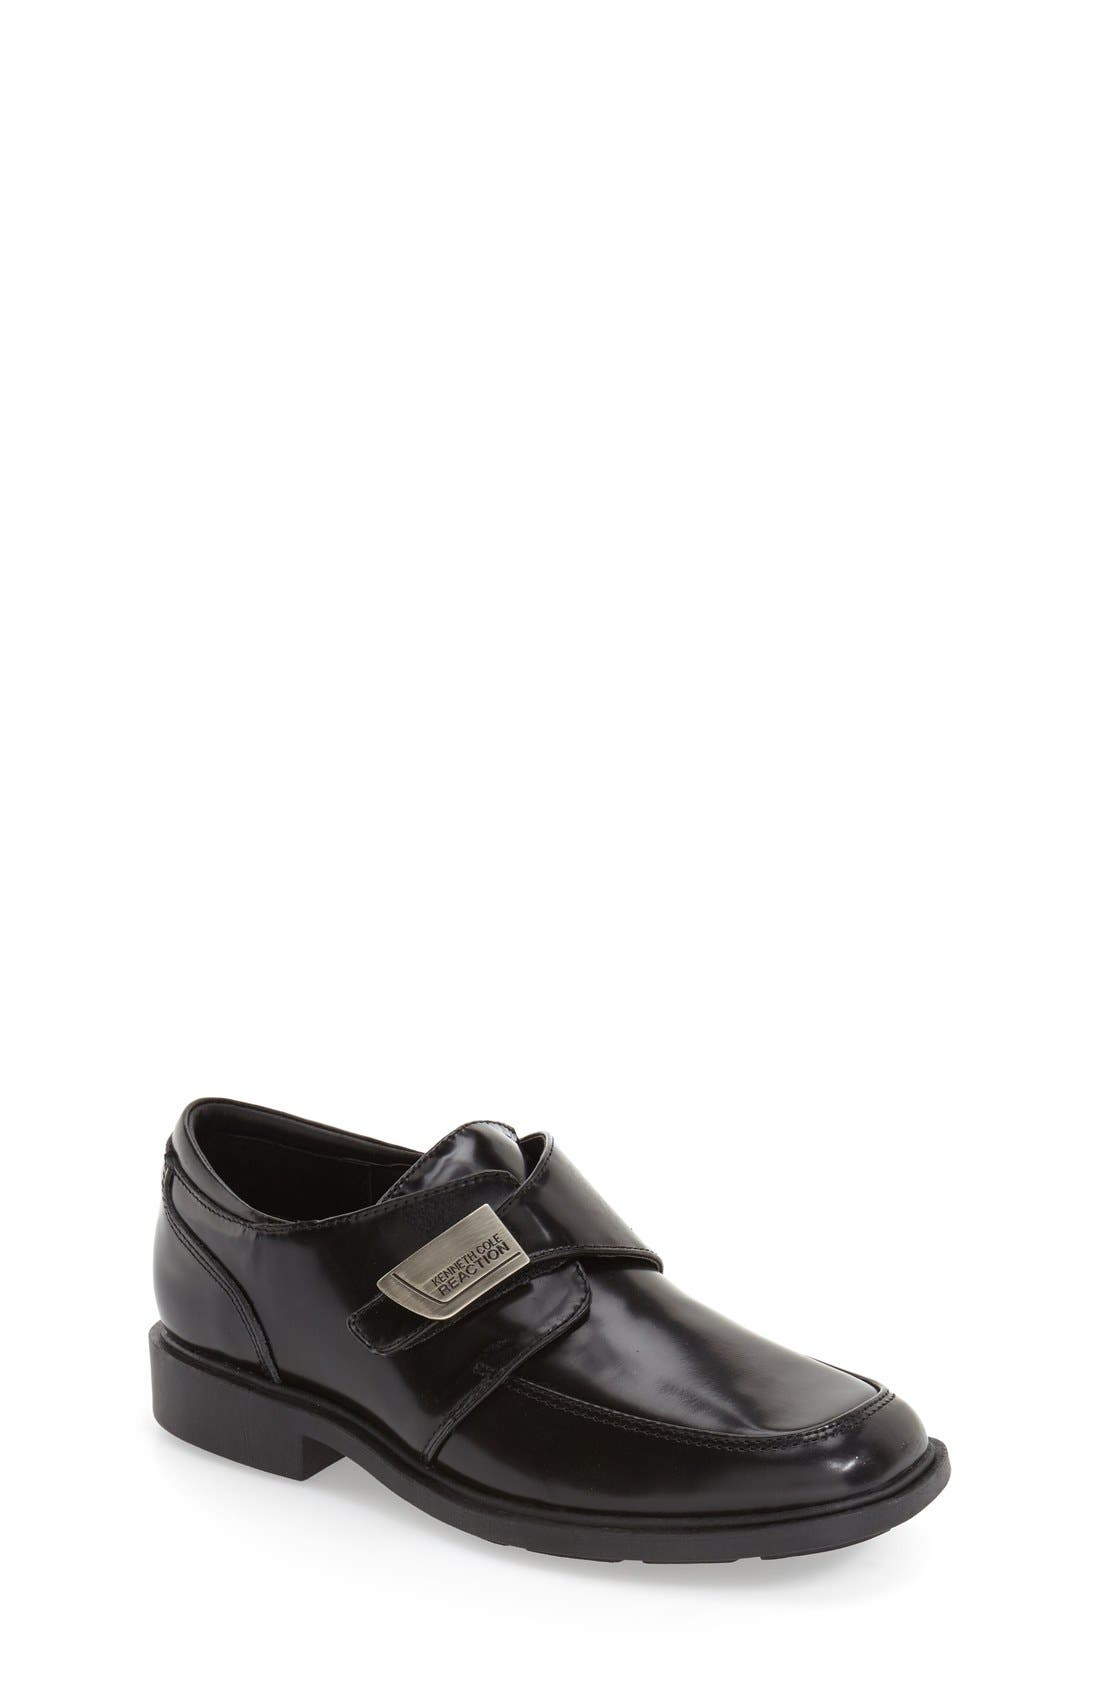 REACTION KENNETH COLE Fast Cash Slip-On